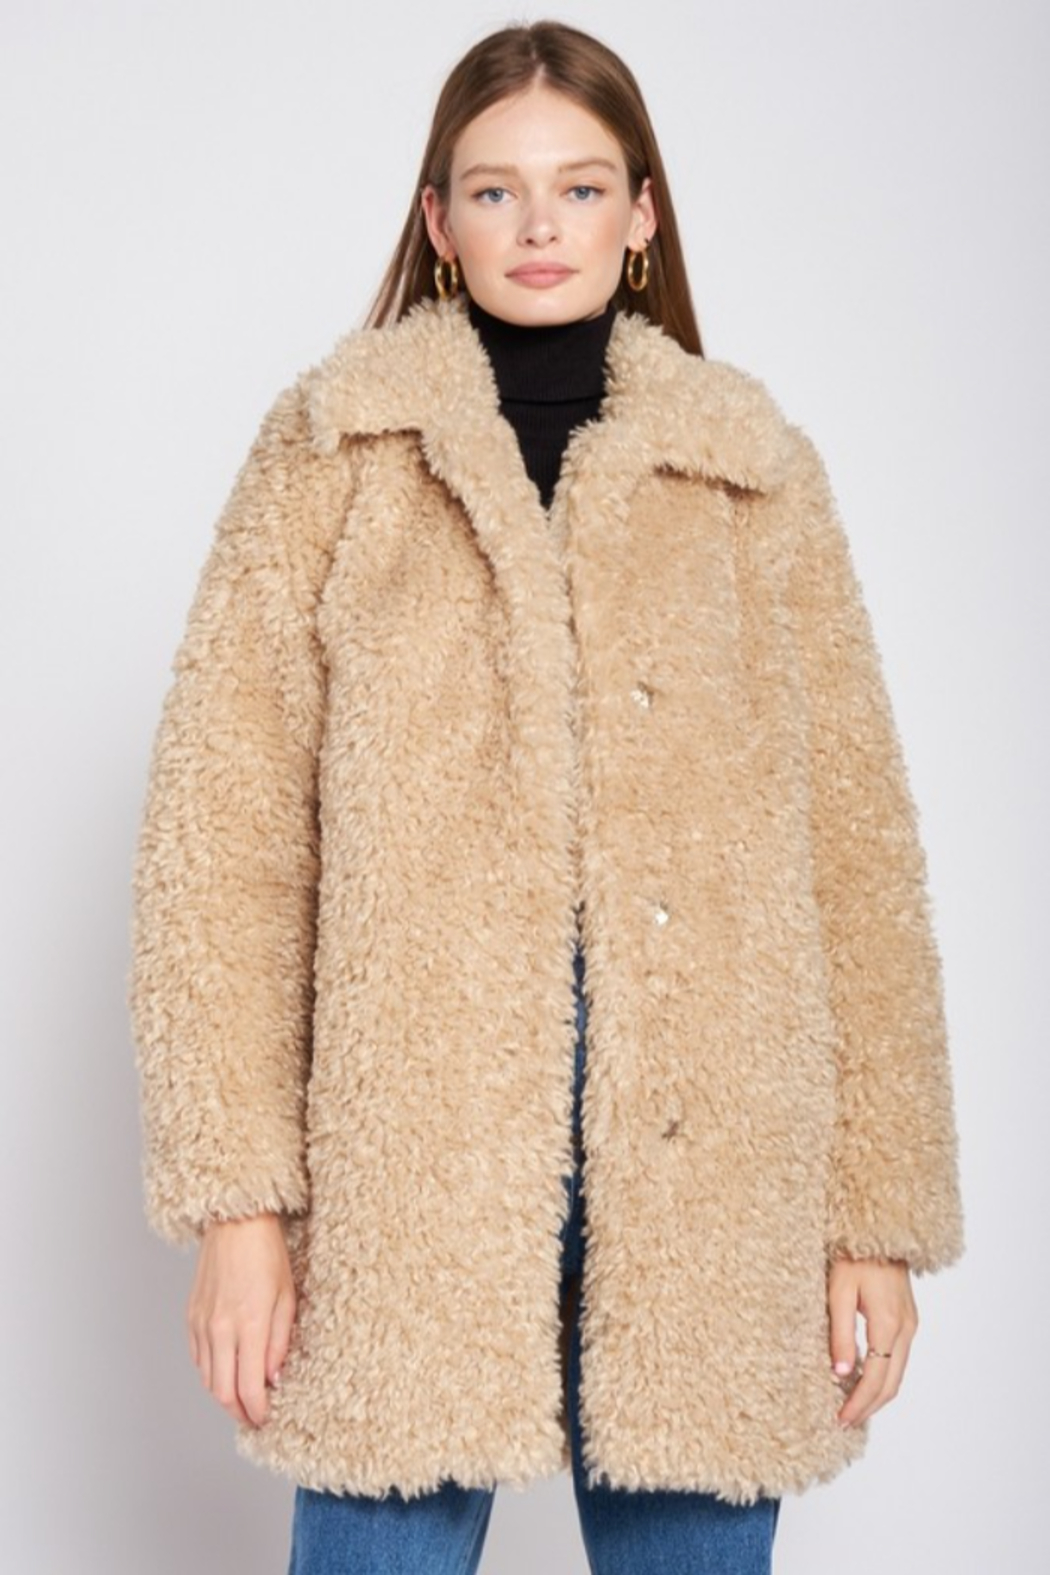 Emory Park Furry Coat with Lapel Collar - Main Image